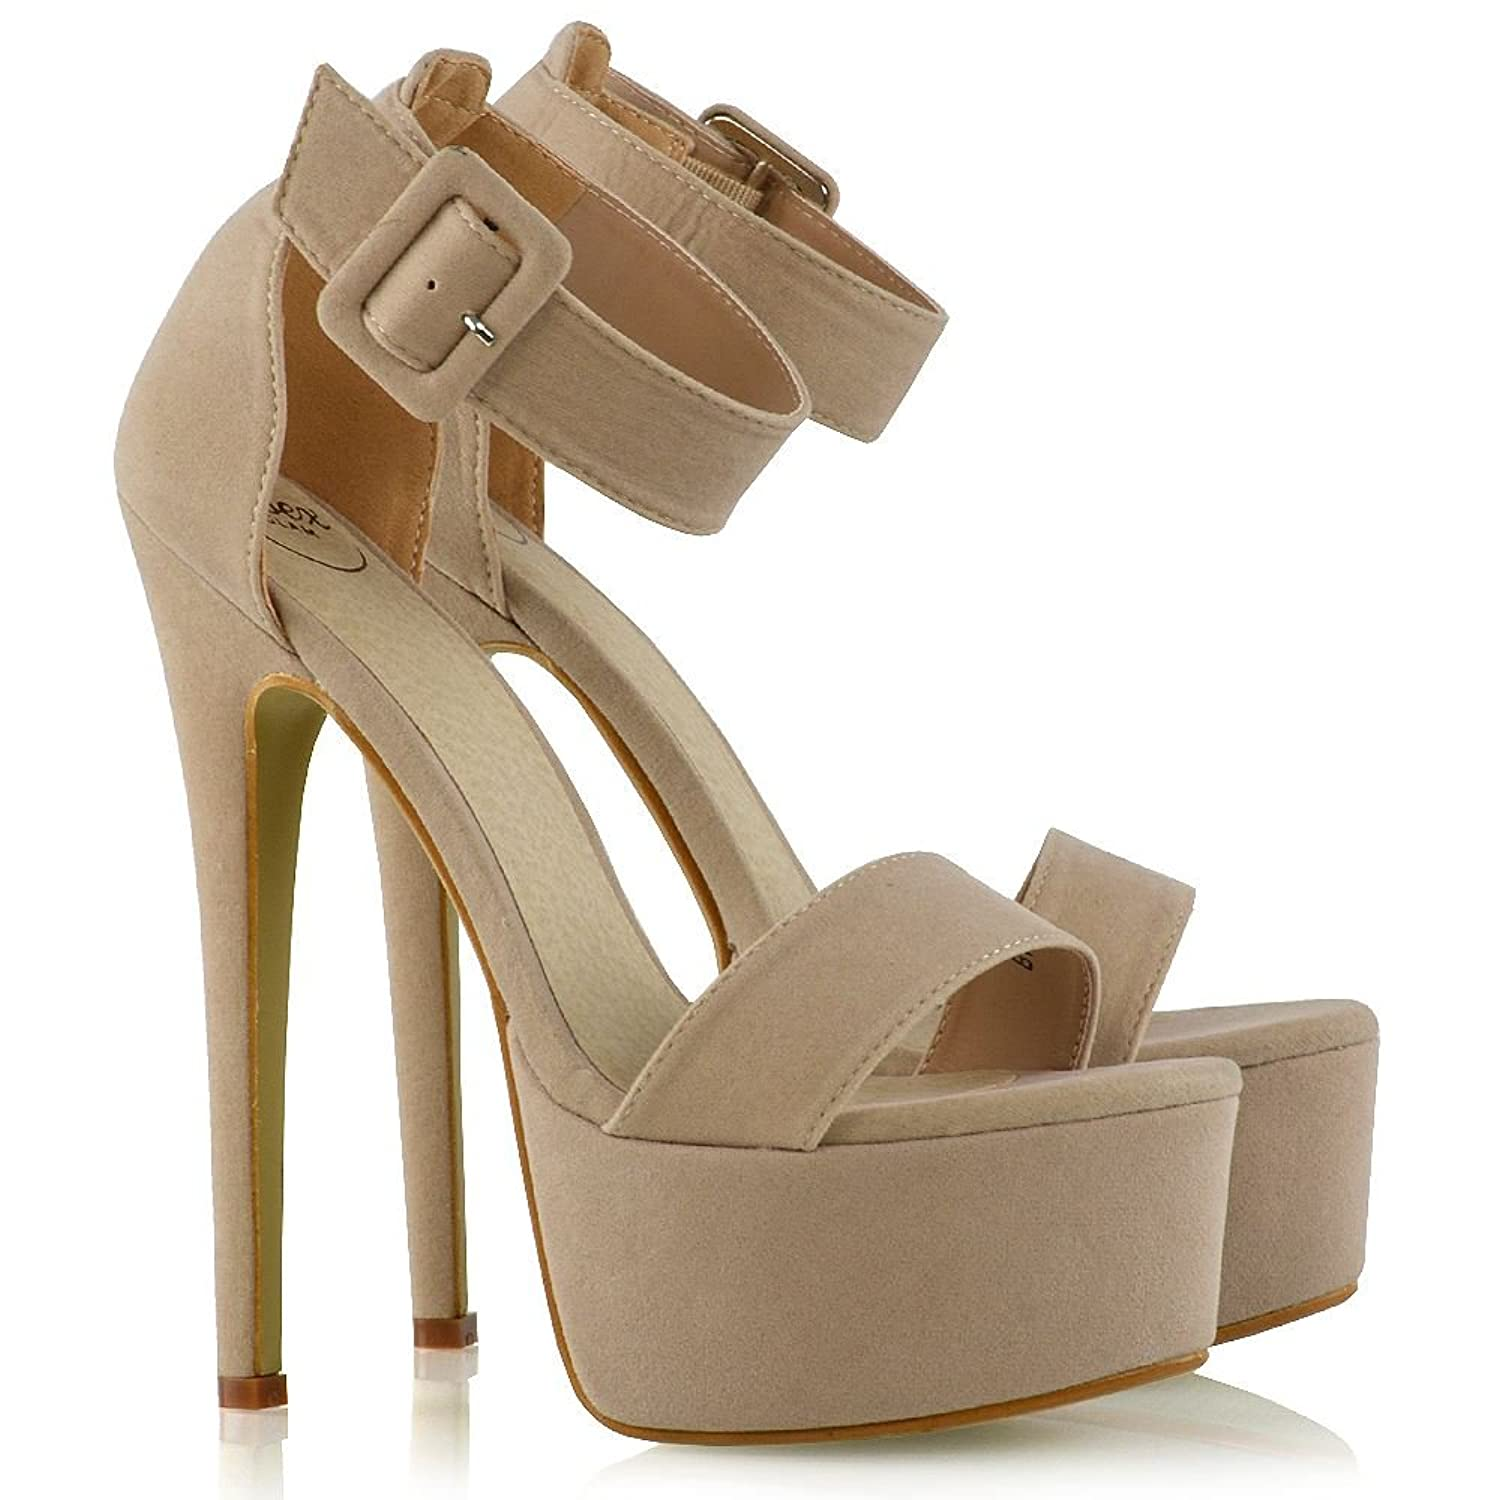 ESSEX GLAM Womens Ankle Strap Open Toe Ladies Stiletto High Heel Platform  Party Shoes Size: Amazon.co.uk: Shoes & Bags